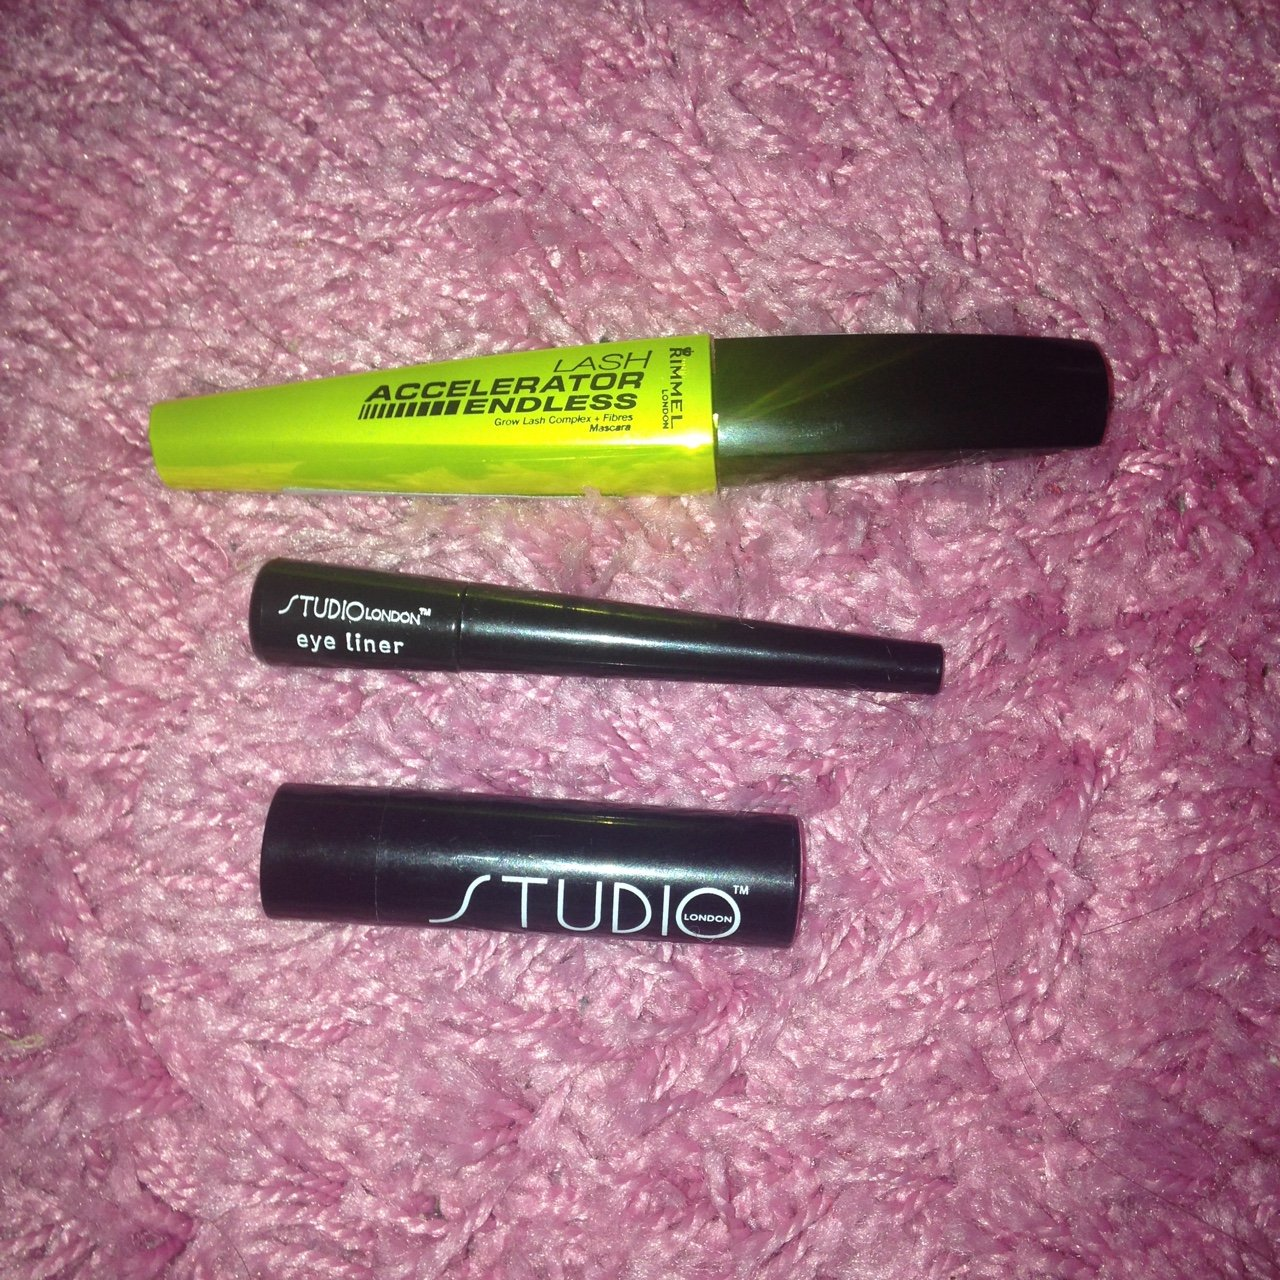 a2c6cf0e24e Bundle of eye things 💗 Rimmel London mascara , Studio eye x - Depop